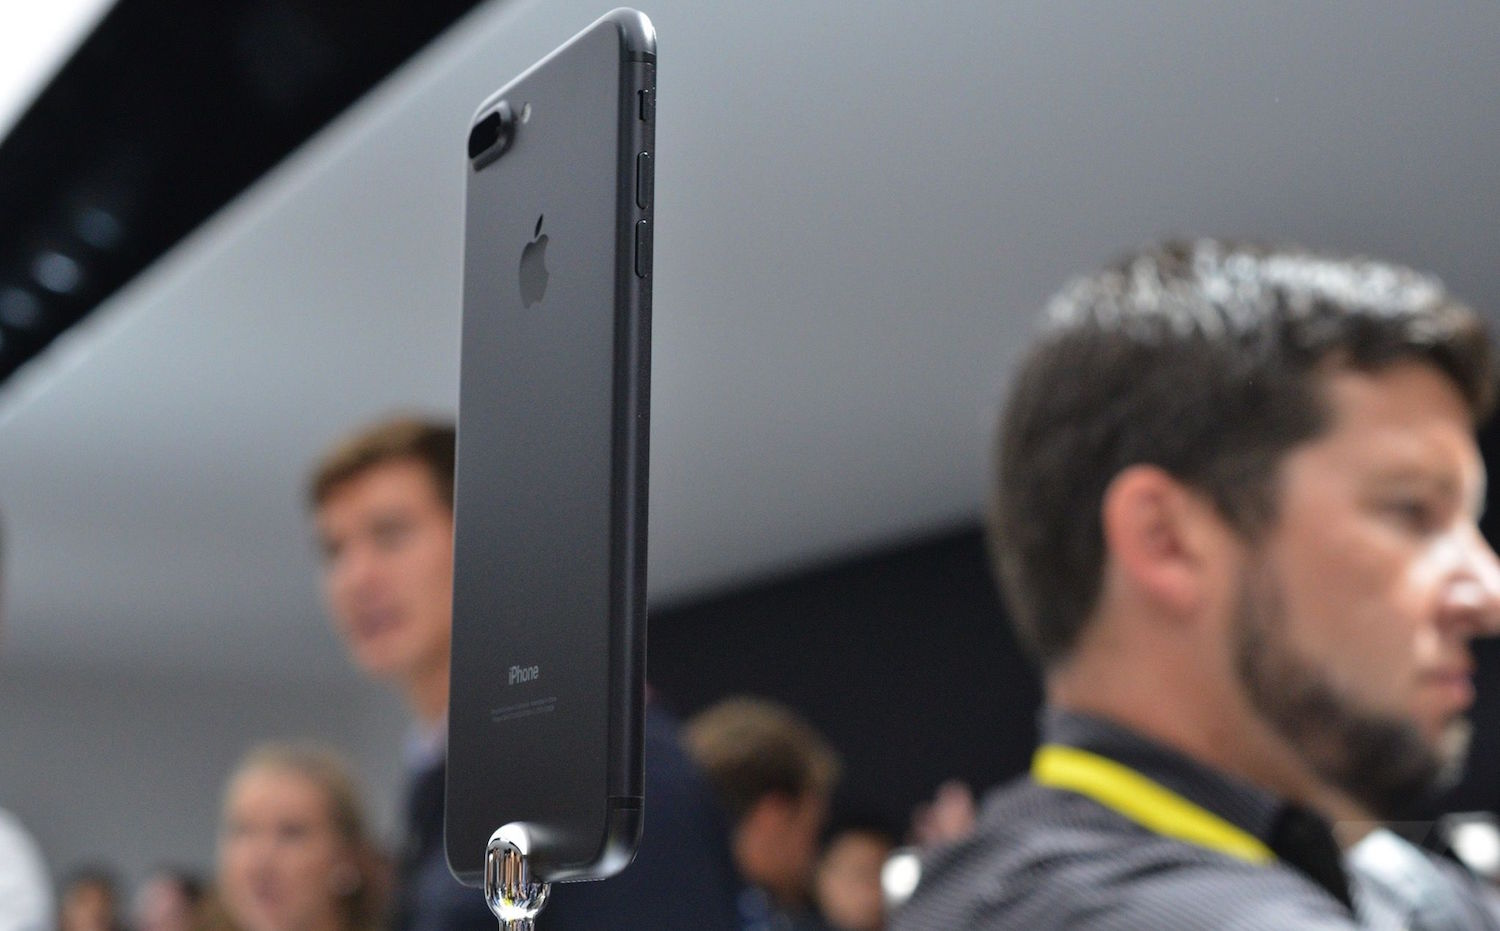 Why Apple won't report on the pre-orders for the iPhone 7